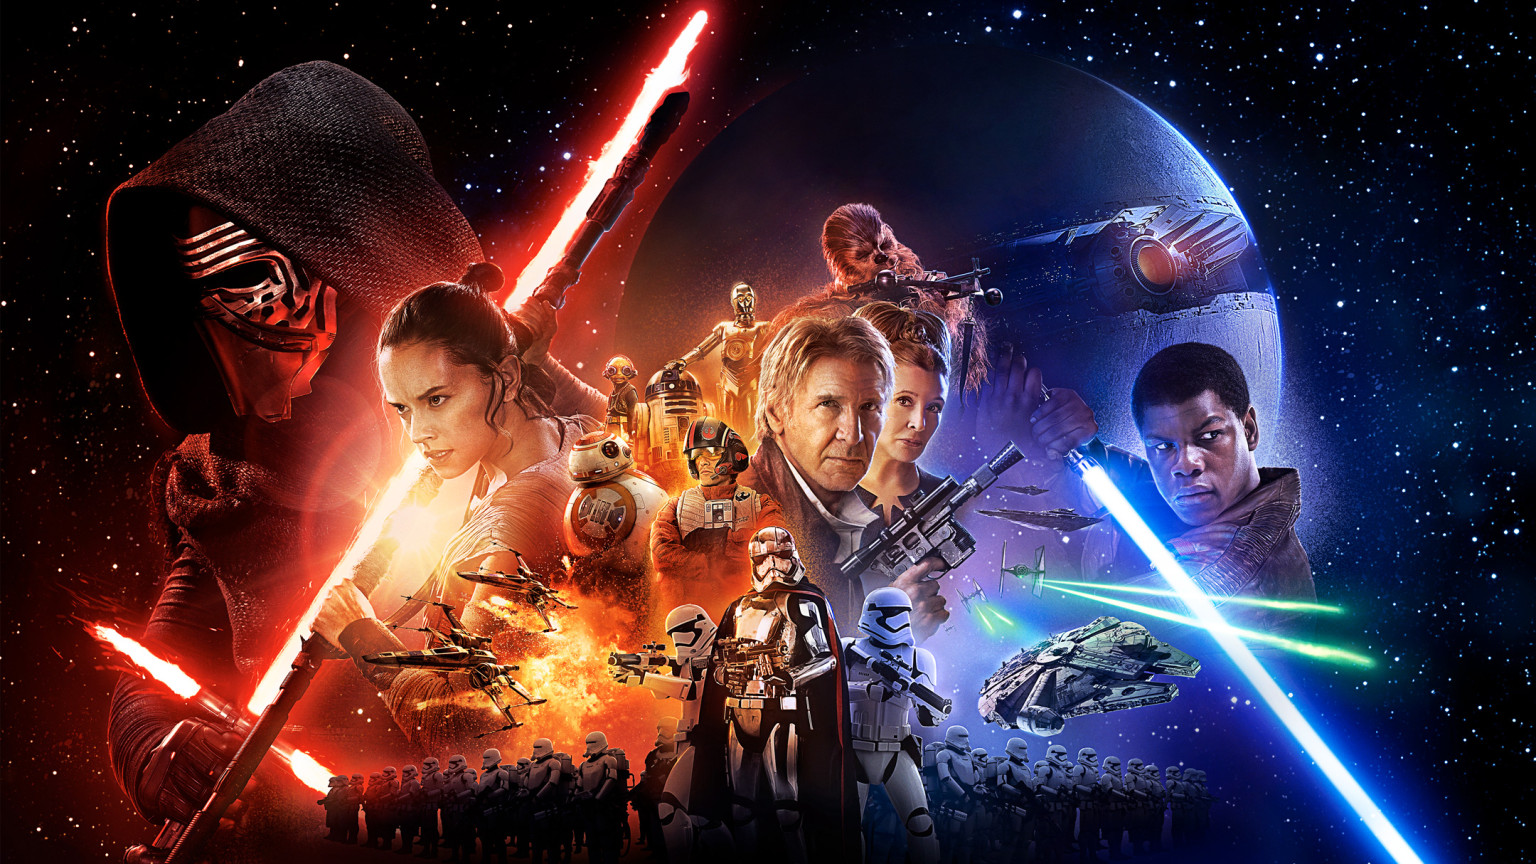 The Force is Back!